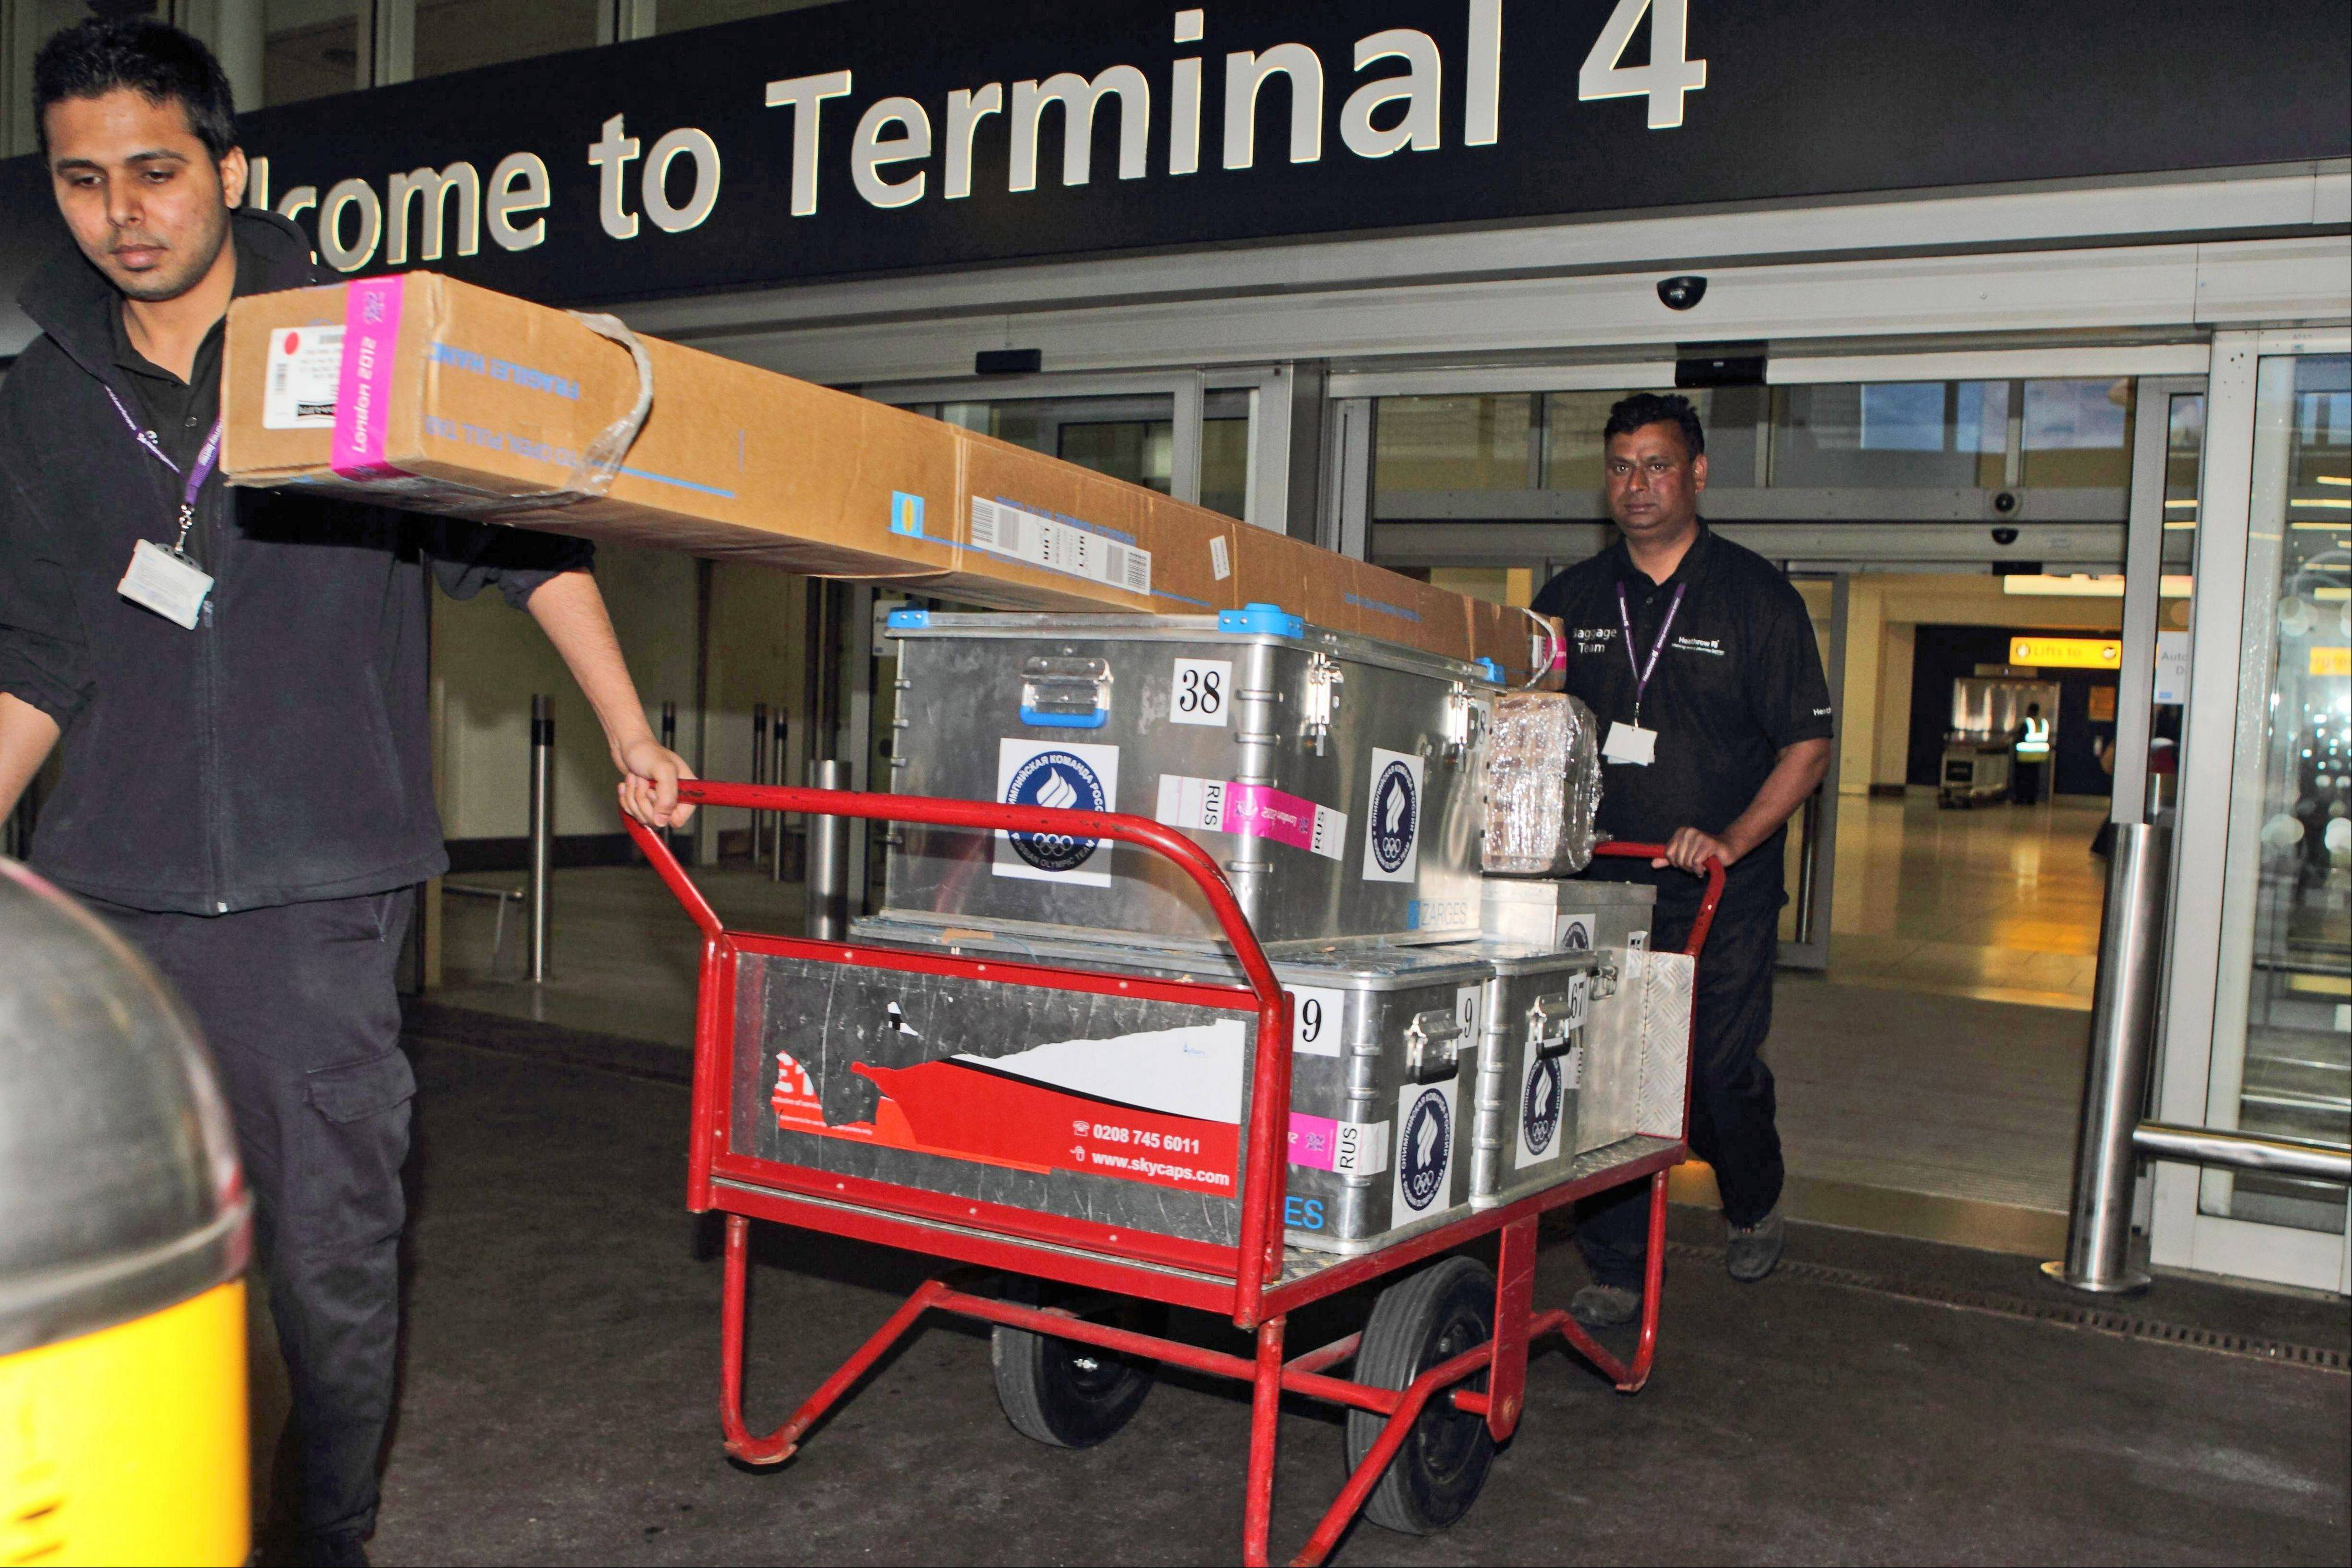 Traveling with bulky, odd-shaped athletic equipment is just part of the Olympic challenge for athletes. This cart belongs to members of the Russian Olympic team arriving Monday at Heathrow Airport in London.